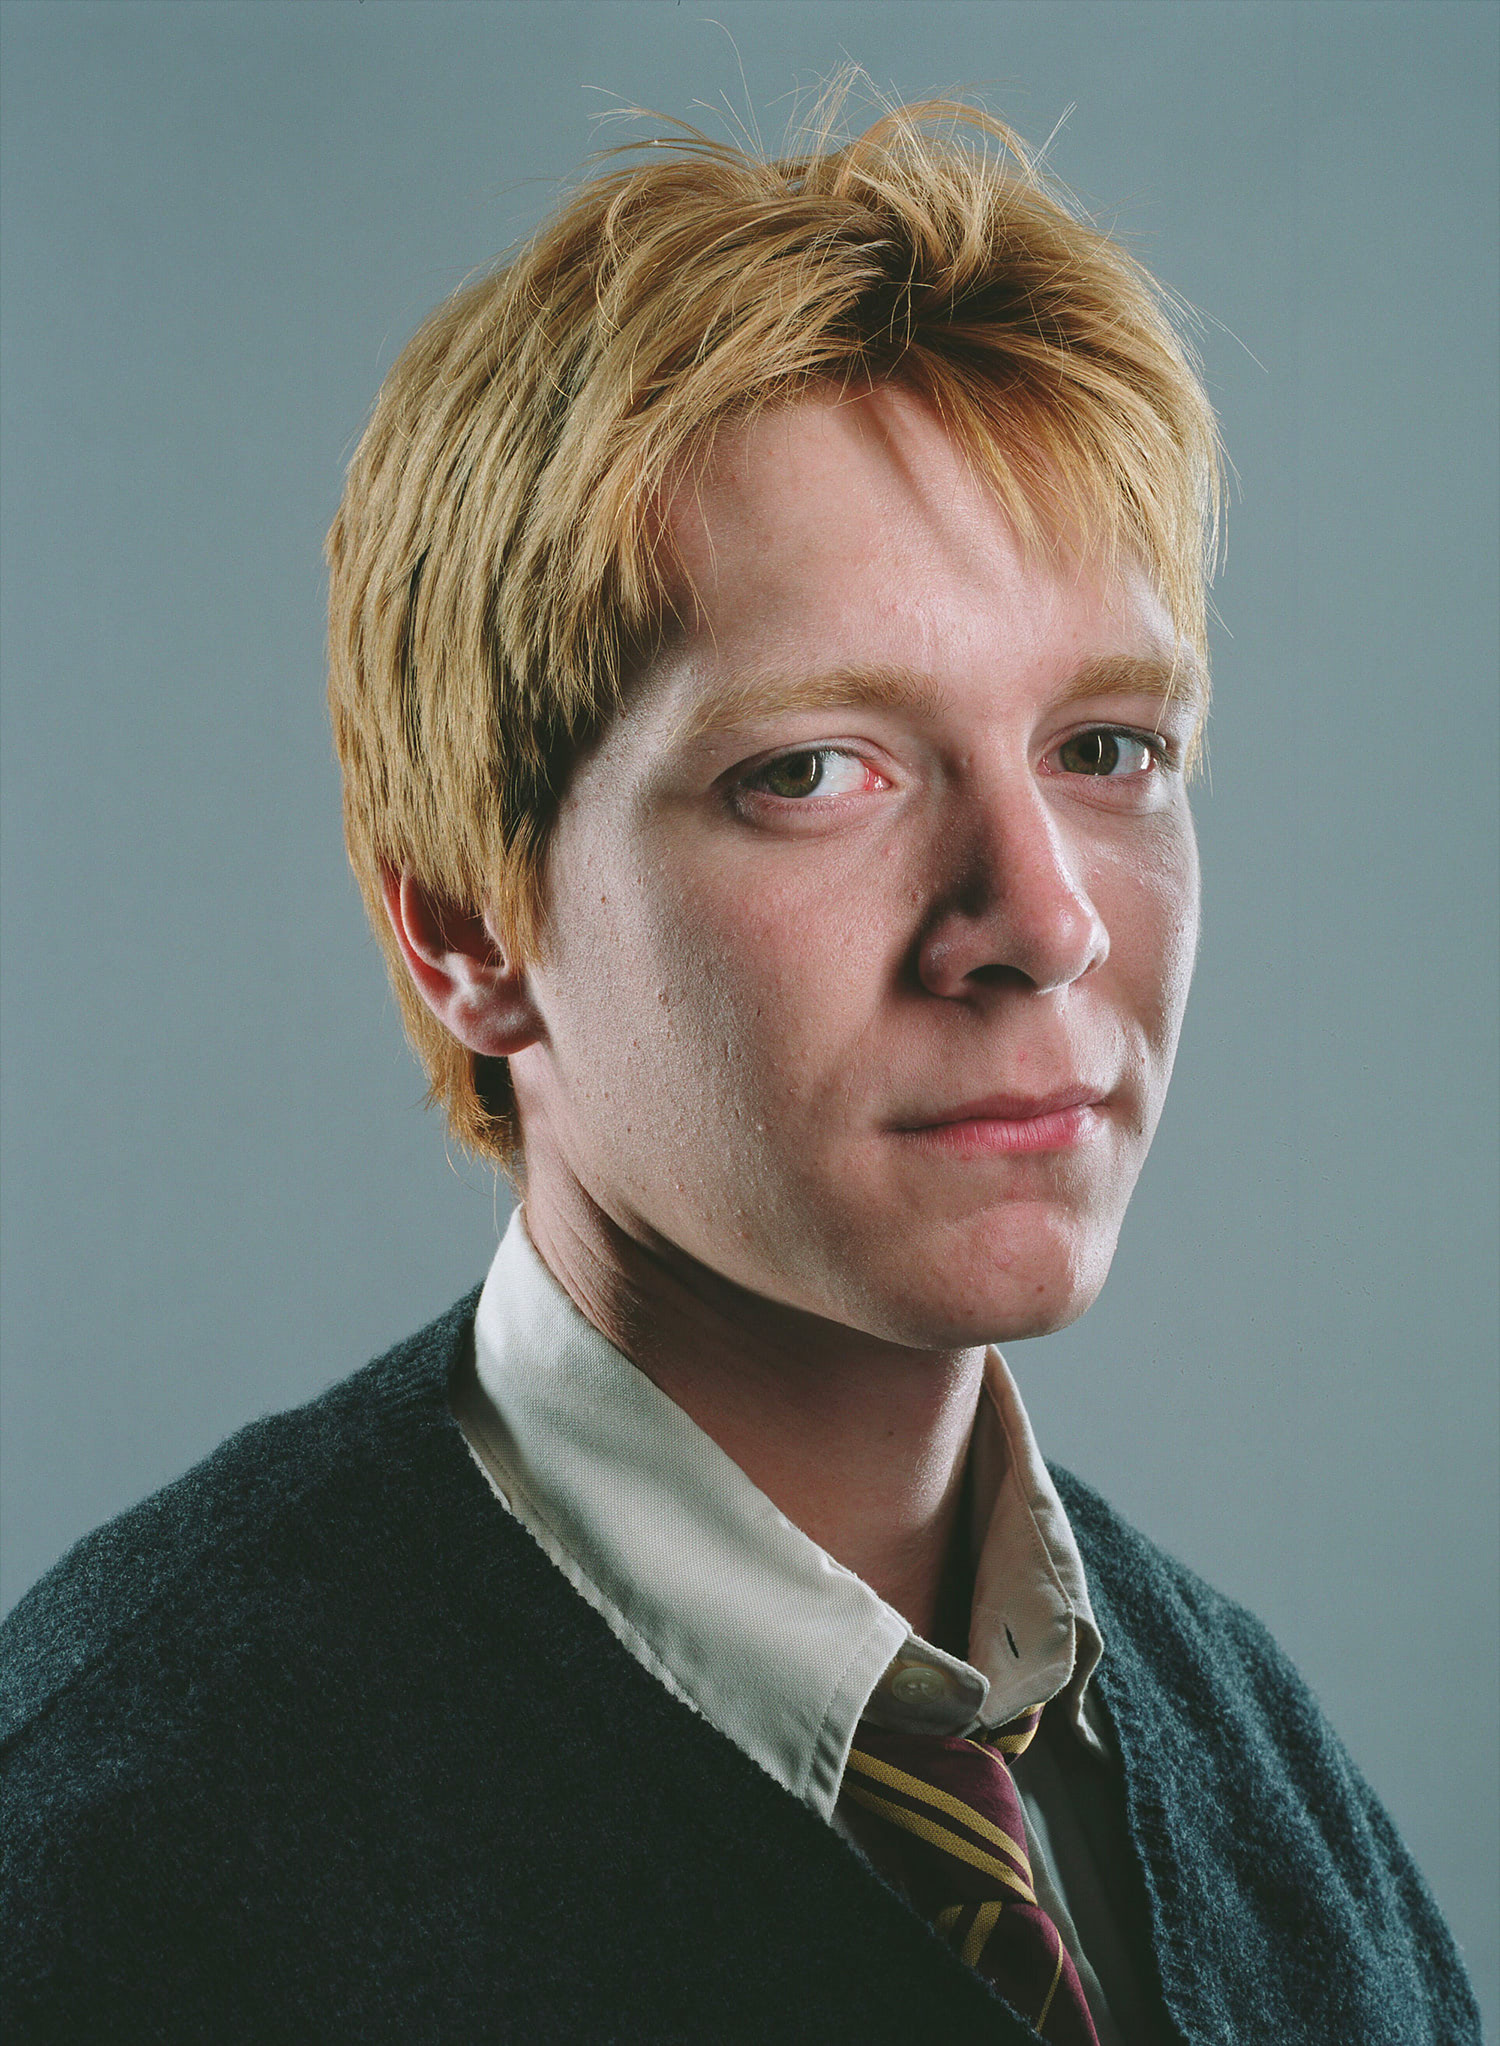 Portrait of George Weasley